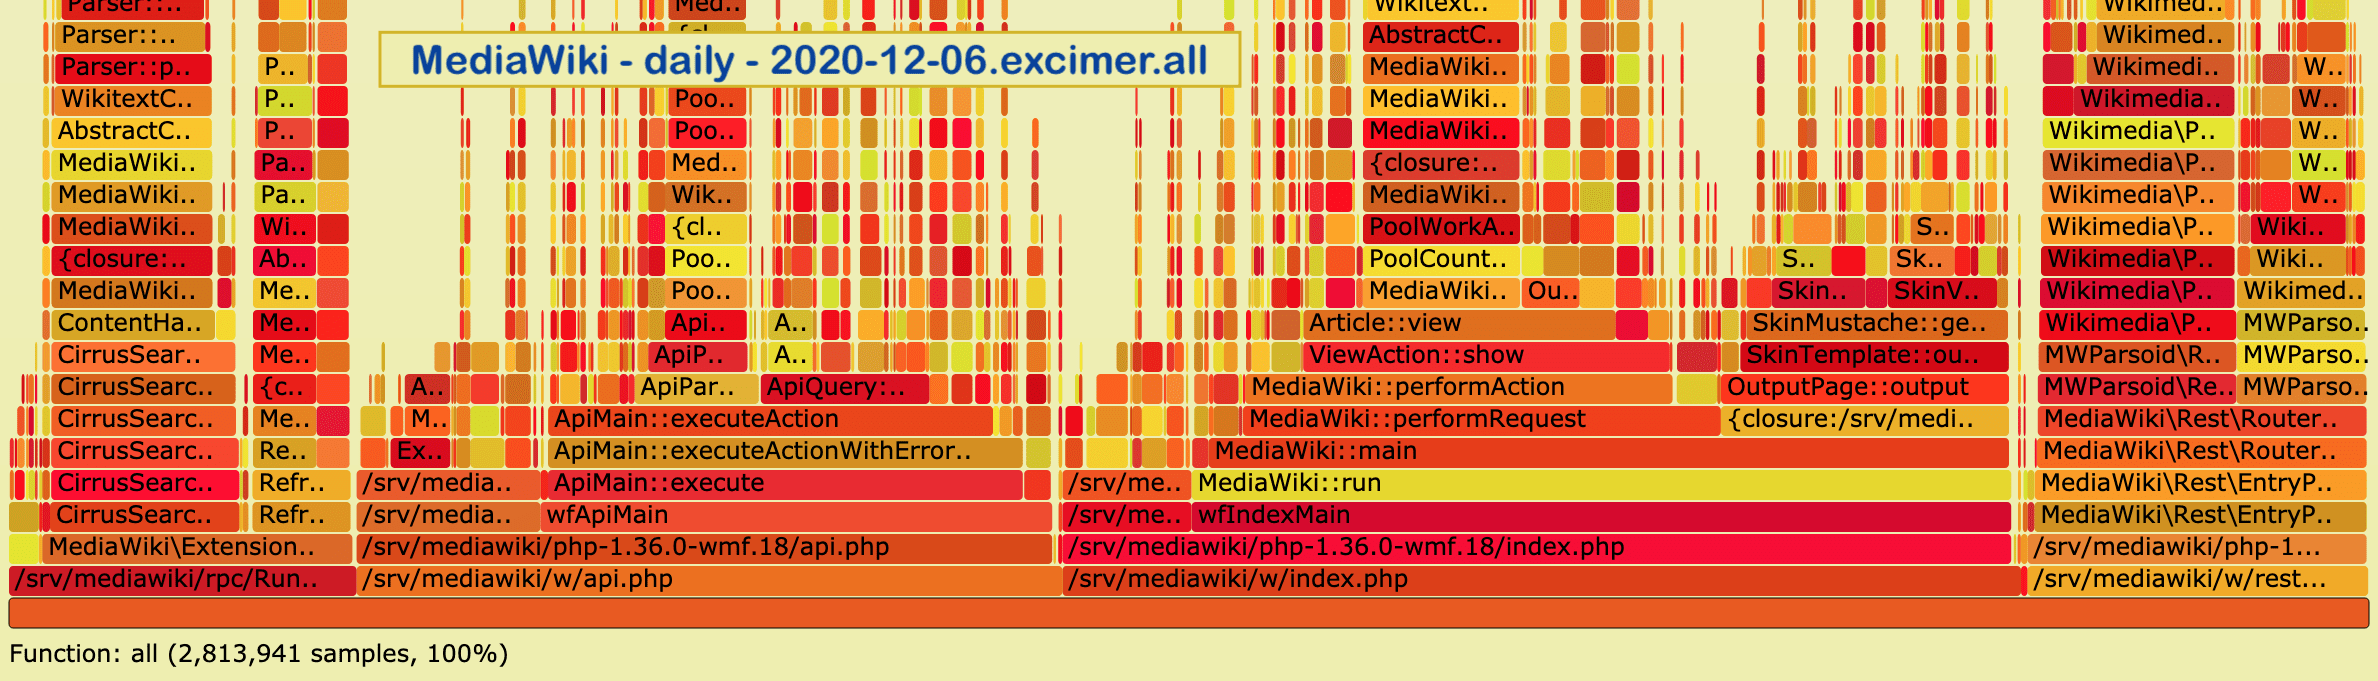 Wikimedia Foundation, production flame graph for 2020-12-06. Generated by Arc Lamp using 2.8 million stack trace samples as collected from Excimer PHP